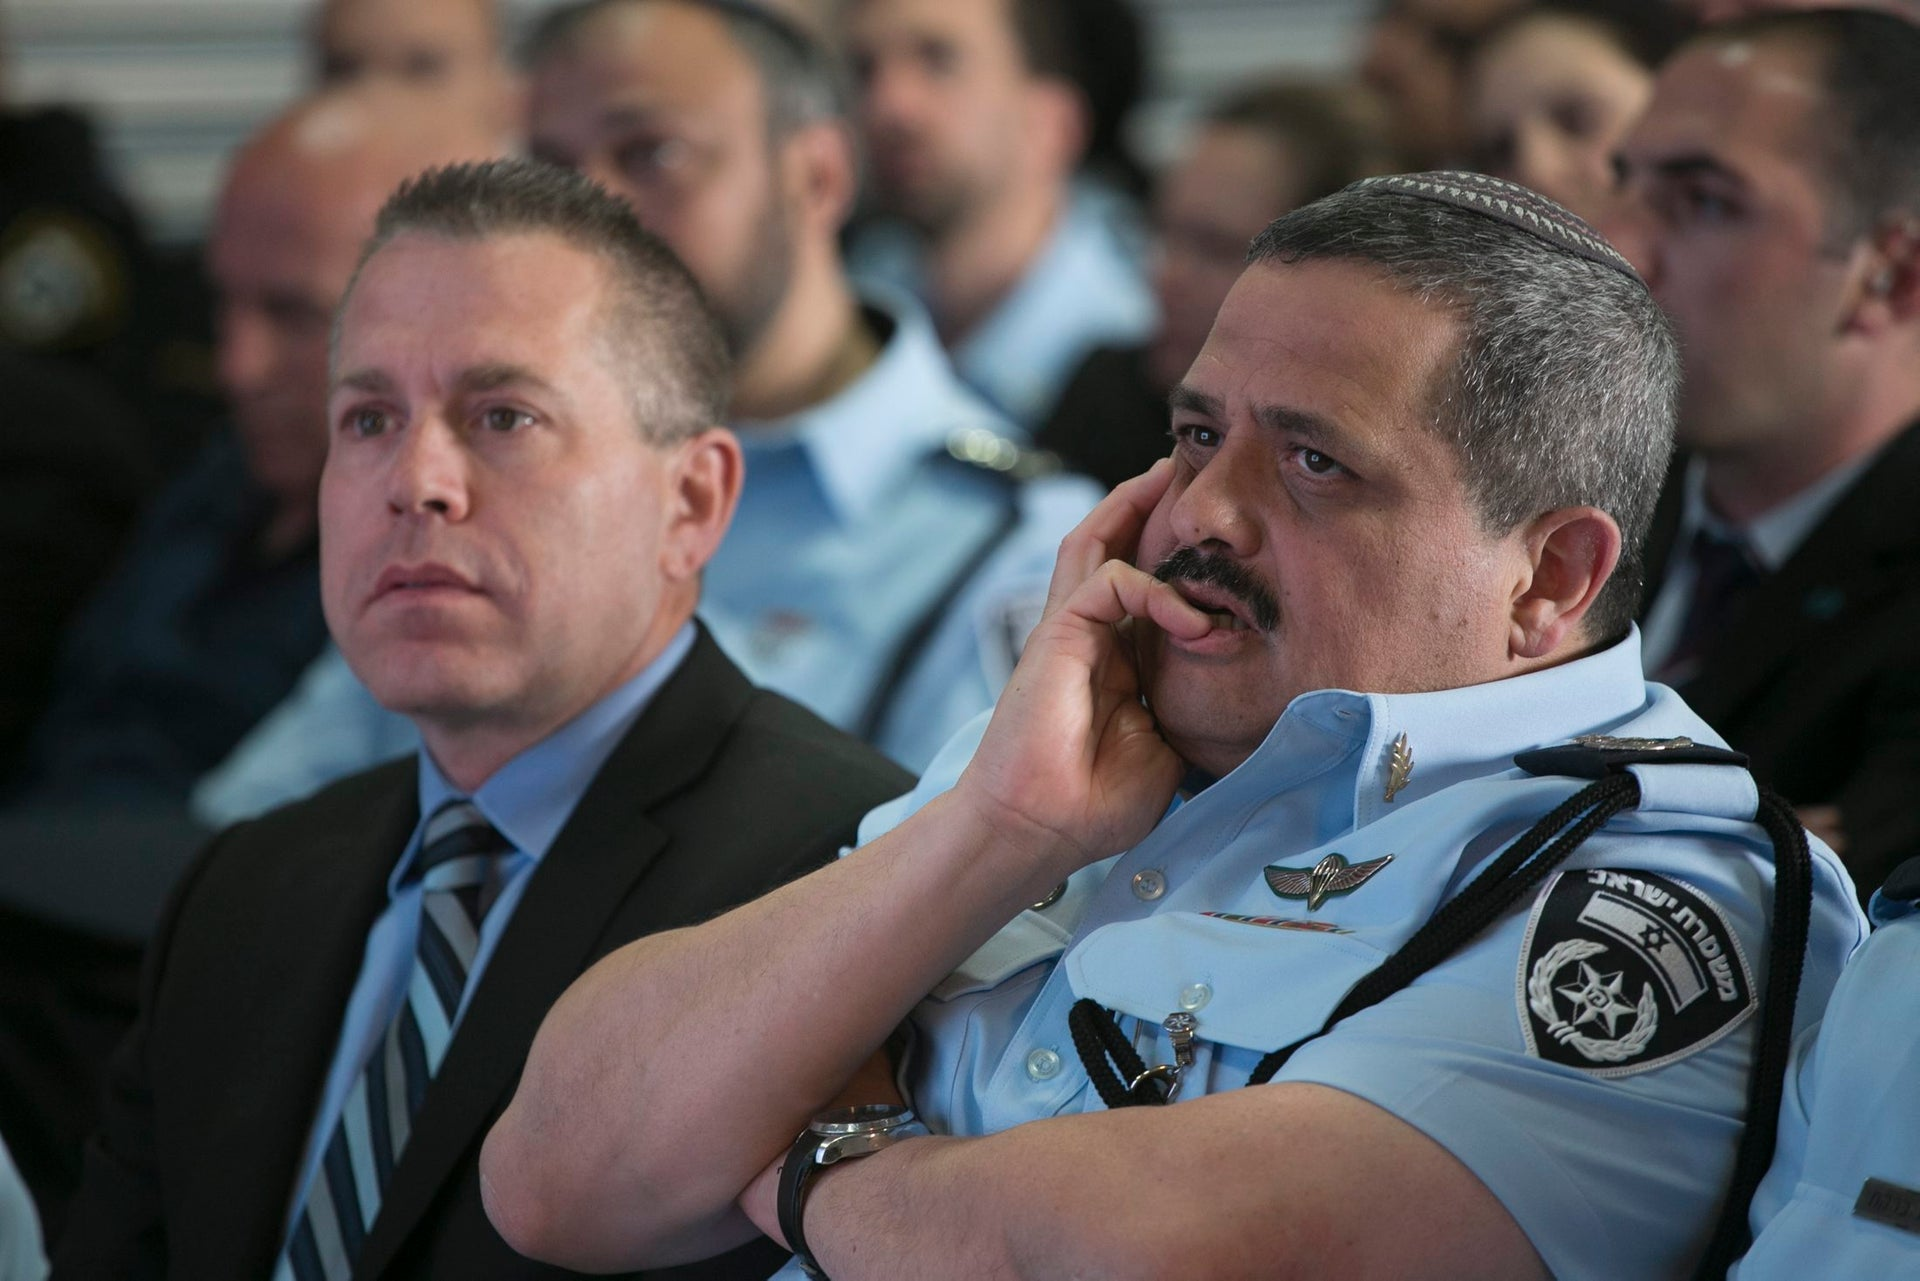 Public Security Minister Gilad Erdan and Police Commissioner Roni Alsheich, March 21, 2017.